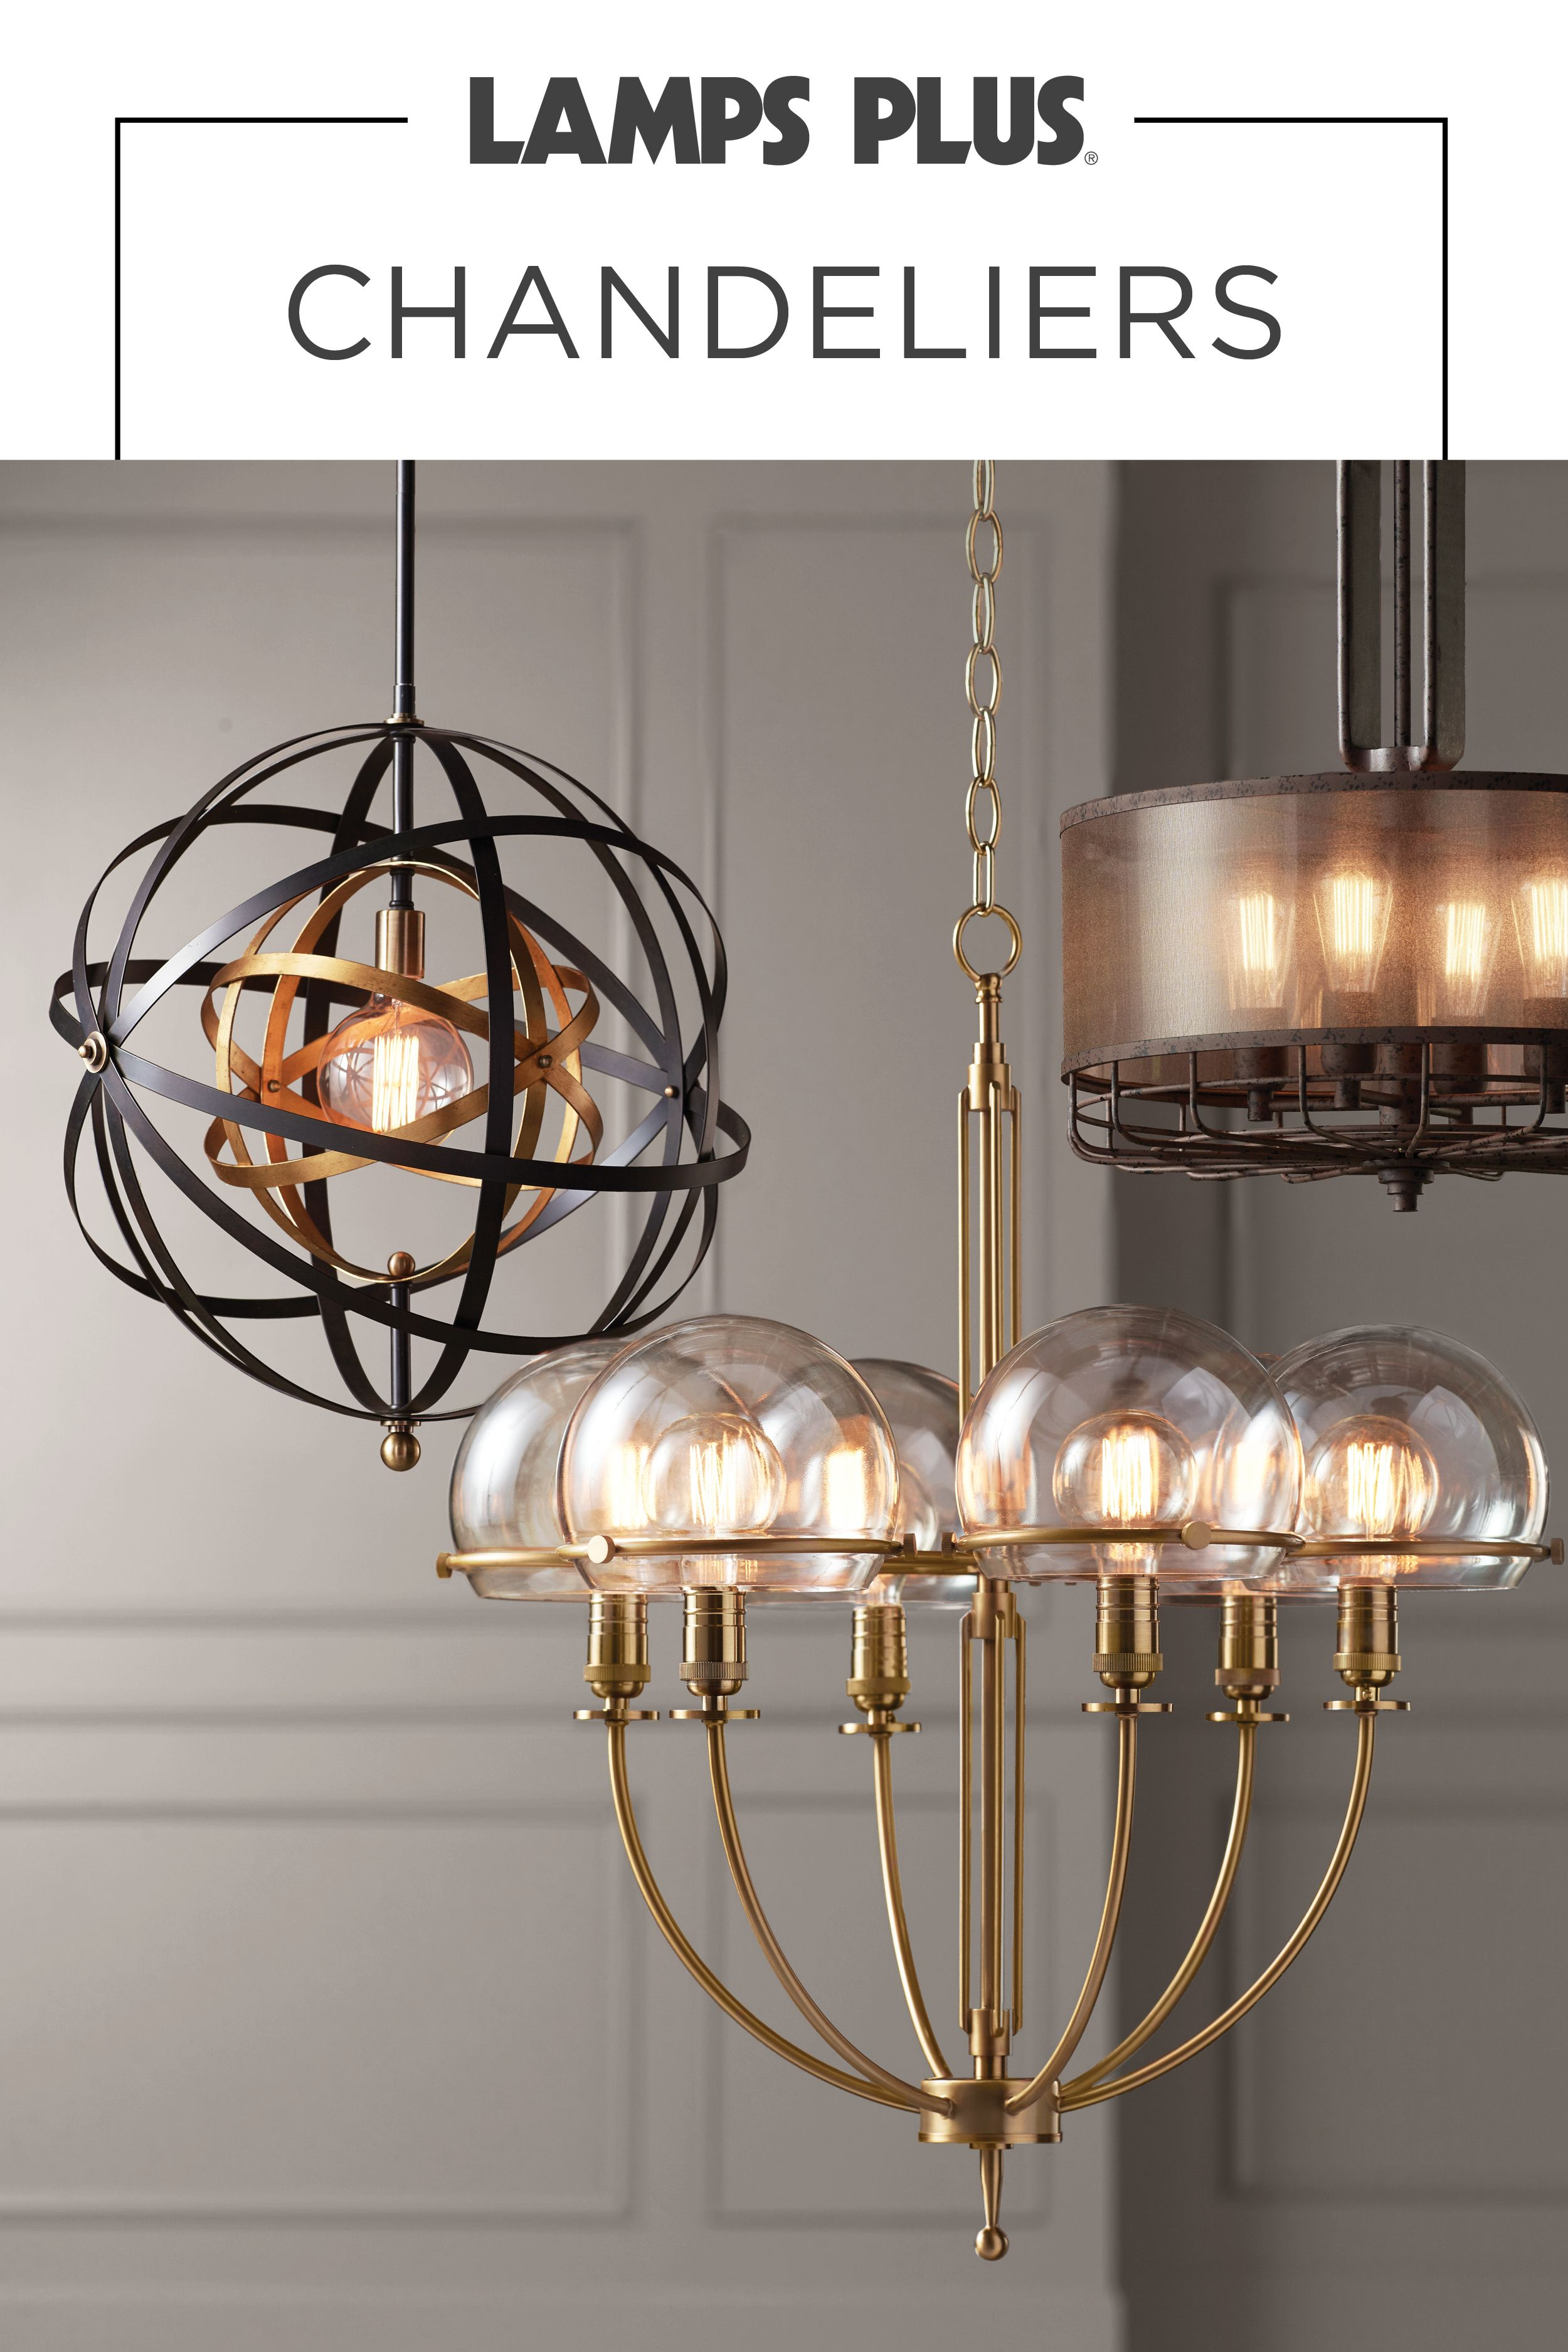 Free shipping on our best selling chandelier lighting top brands and best styles at unbeatable quality shop knowing youre getting the best prices too